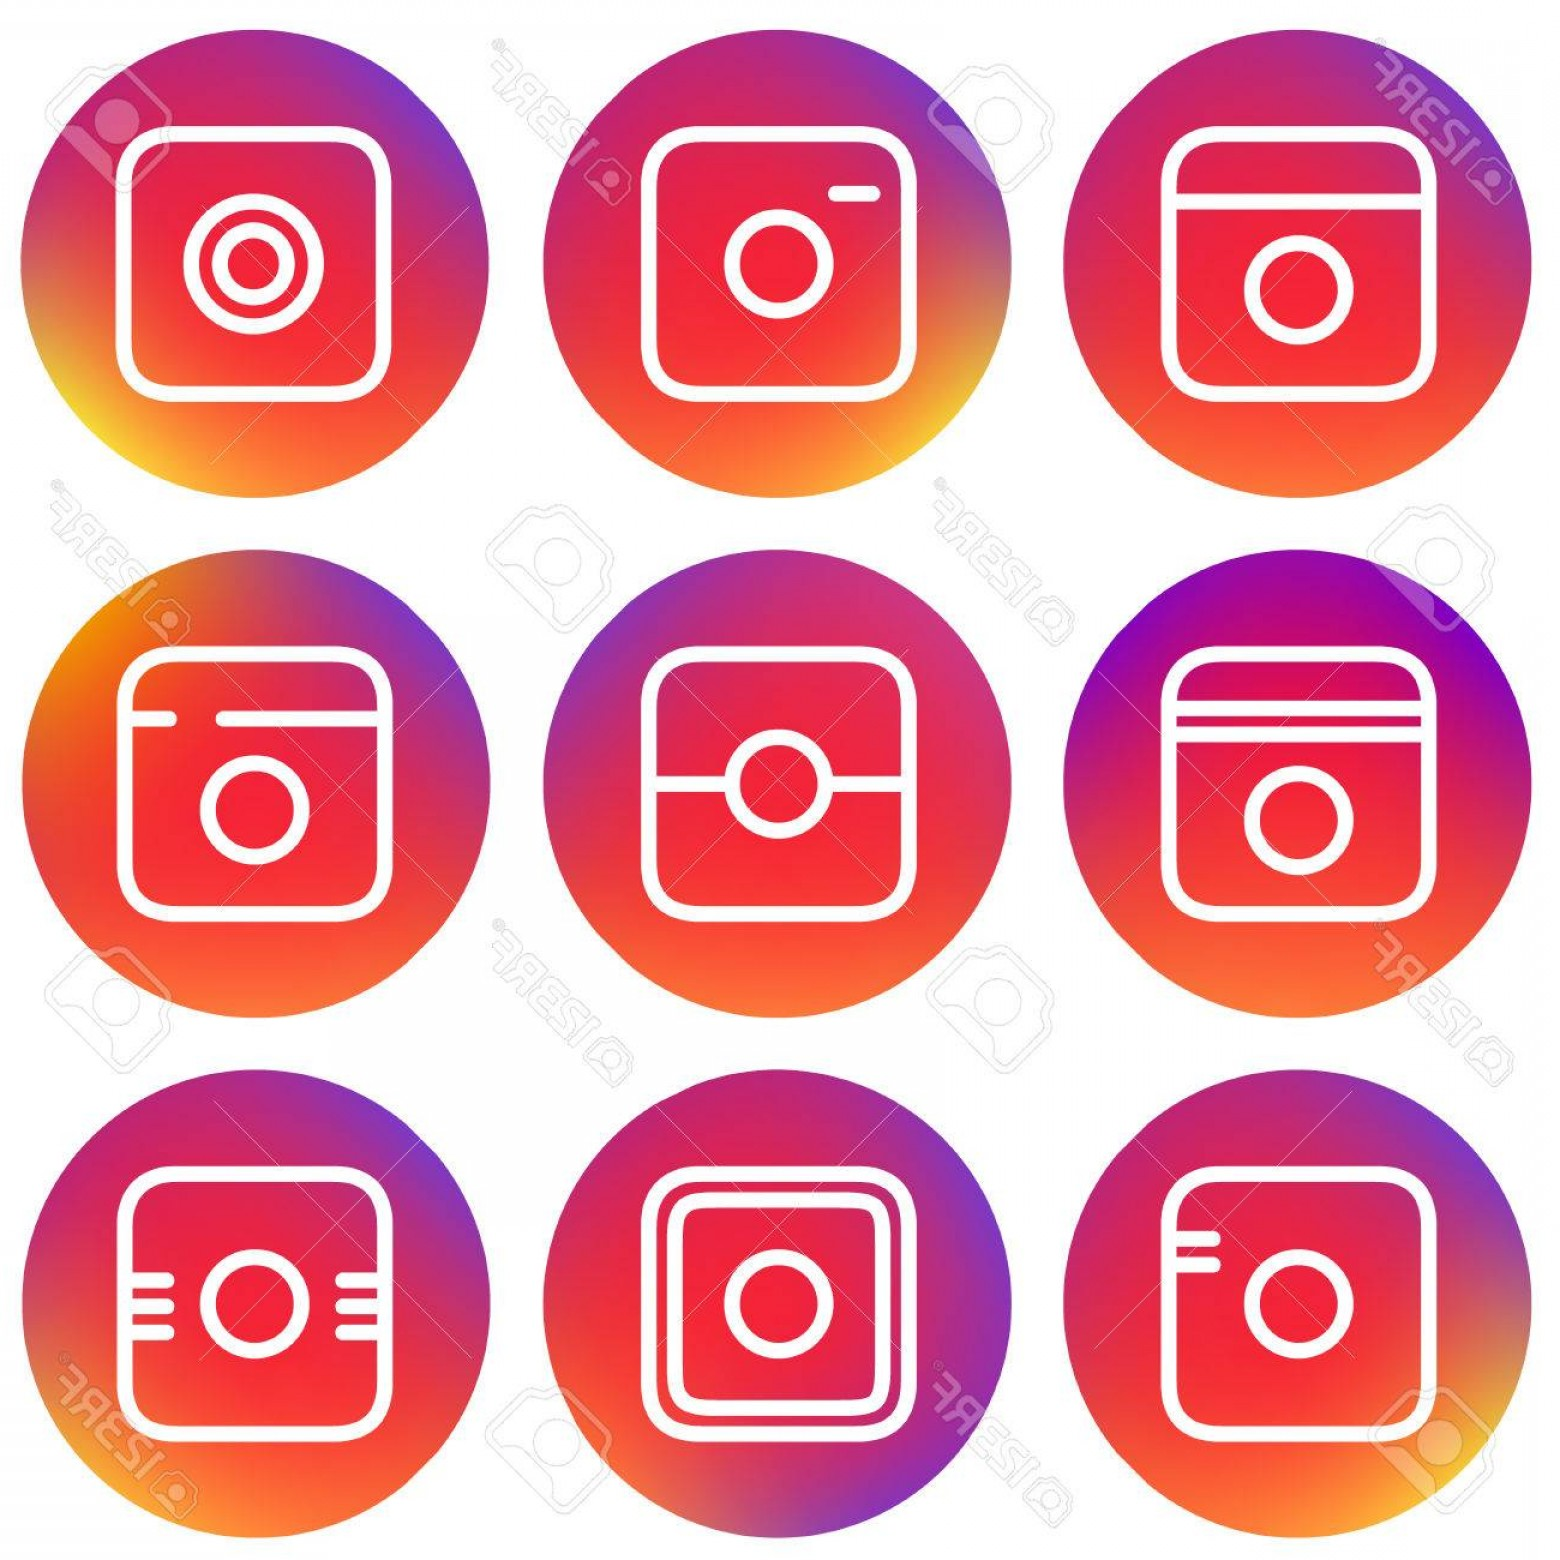 Instagram App Icon Vector: Photostock Vector Smooth Color Gradient Icon Template Set Inspried By Instagram Logo Vector Illustration For Your Soci